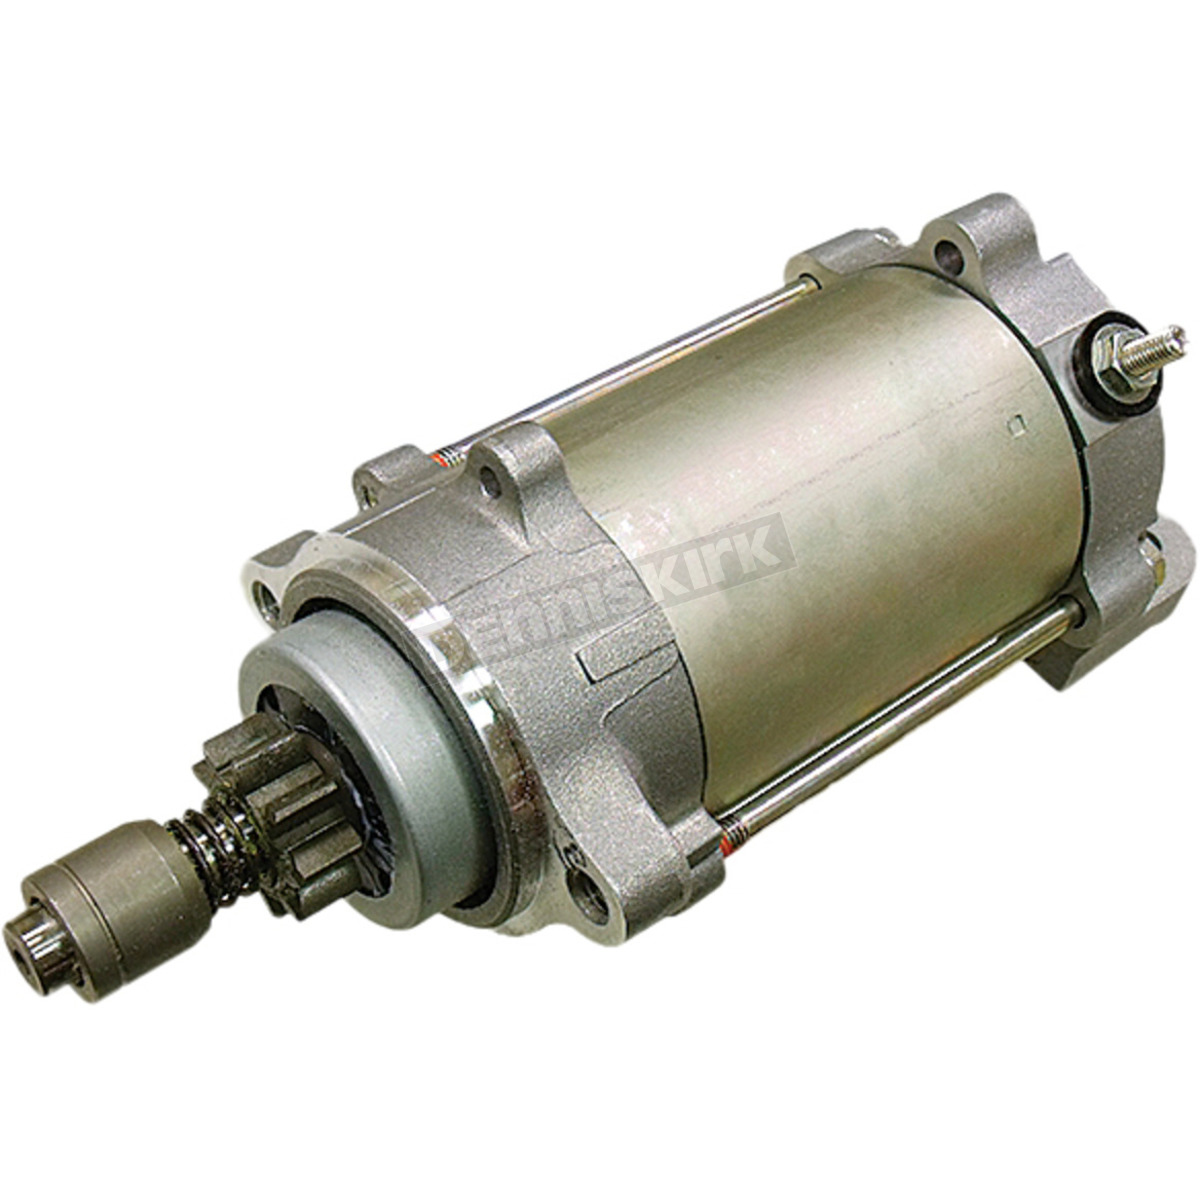 Sports parts inc starter motor sm 01314 snowmobile for Nhd inc motor starter